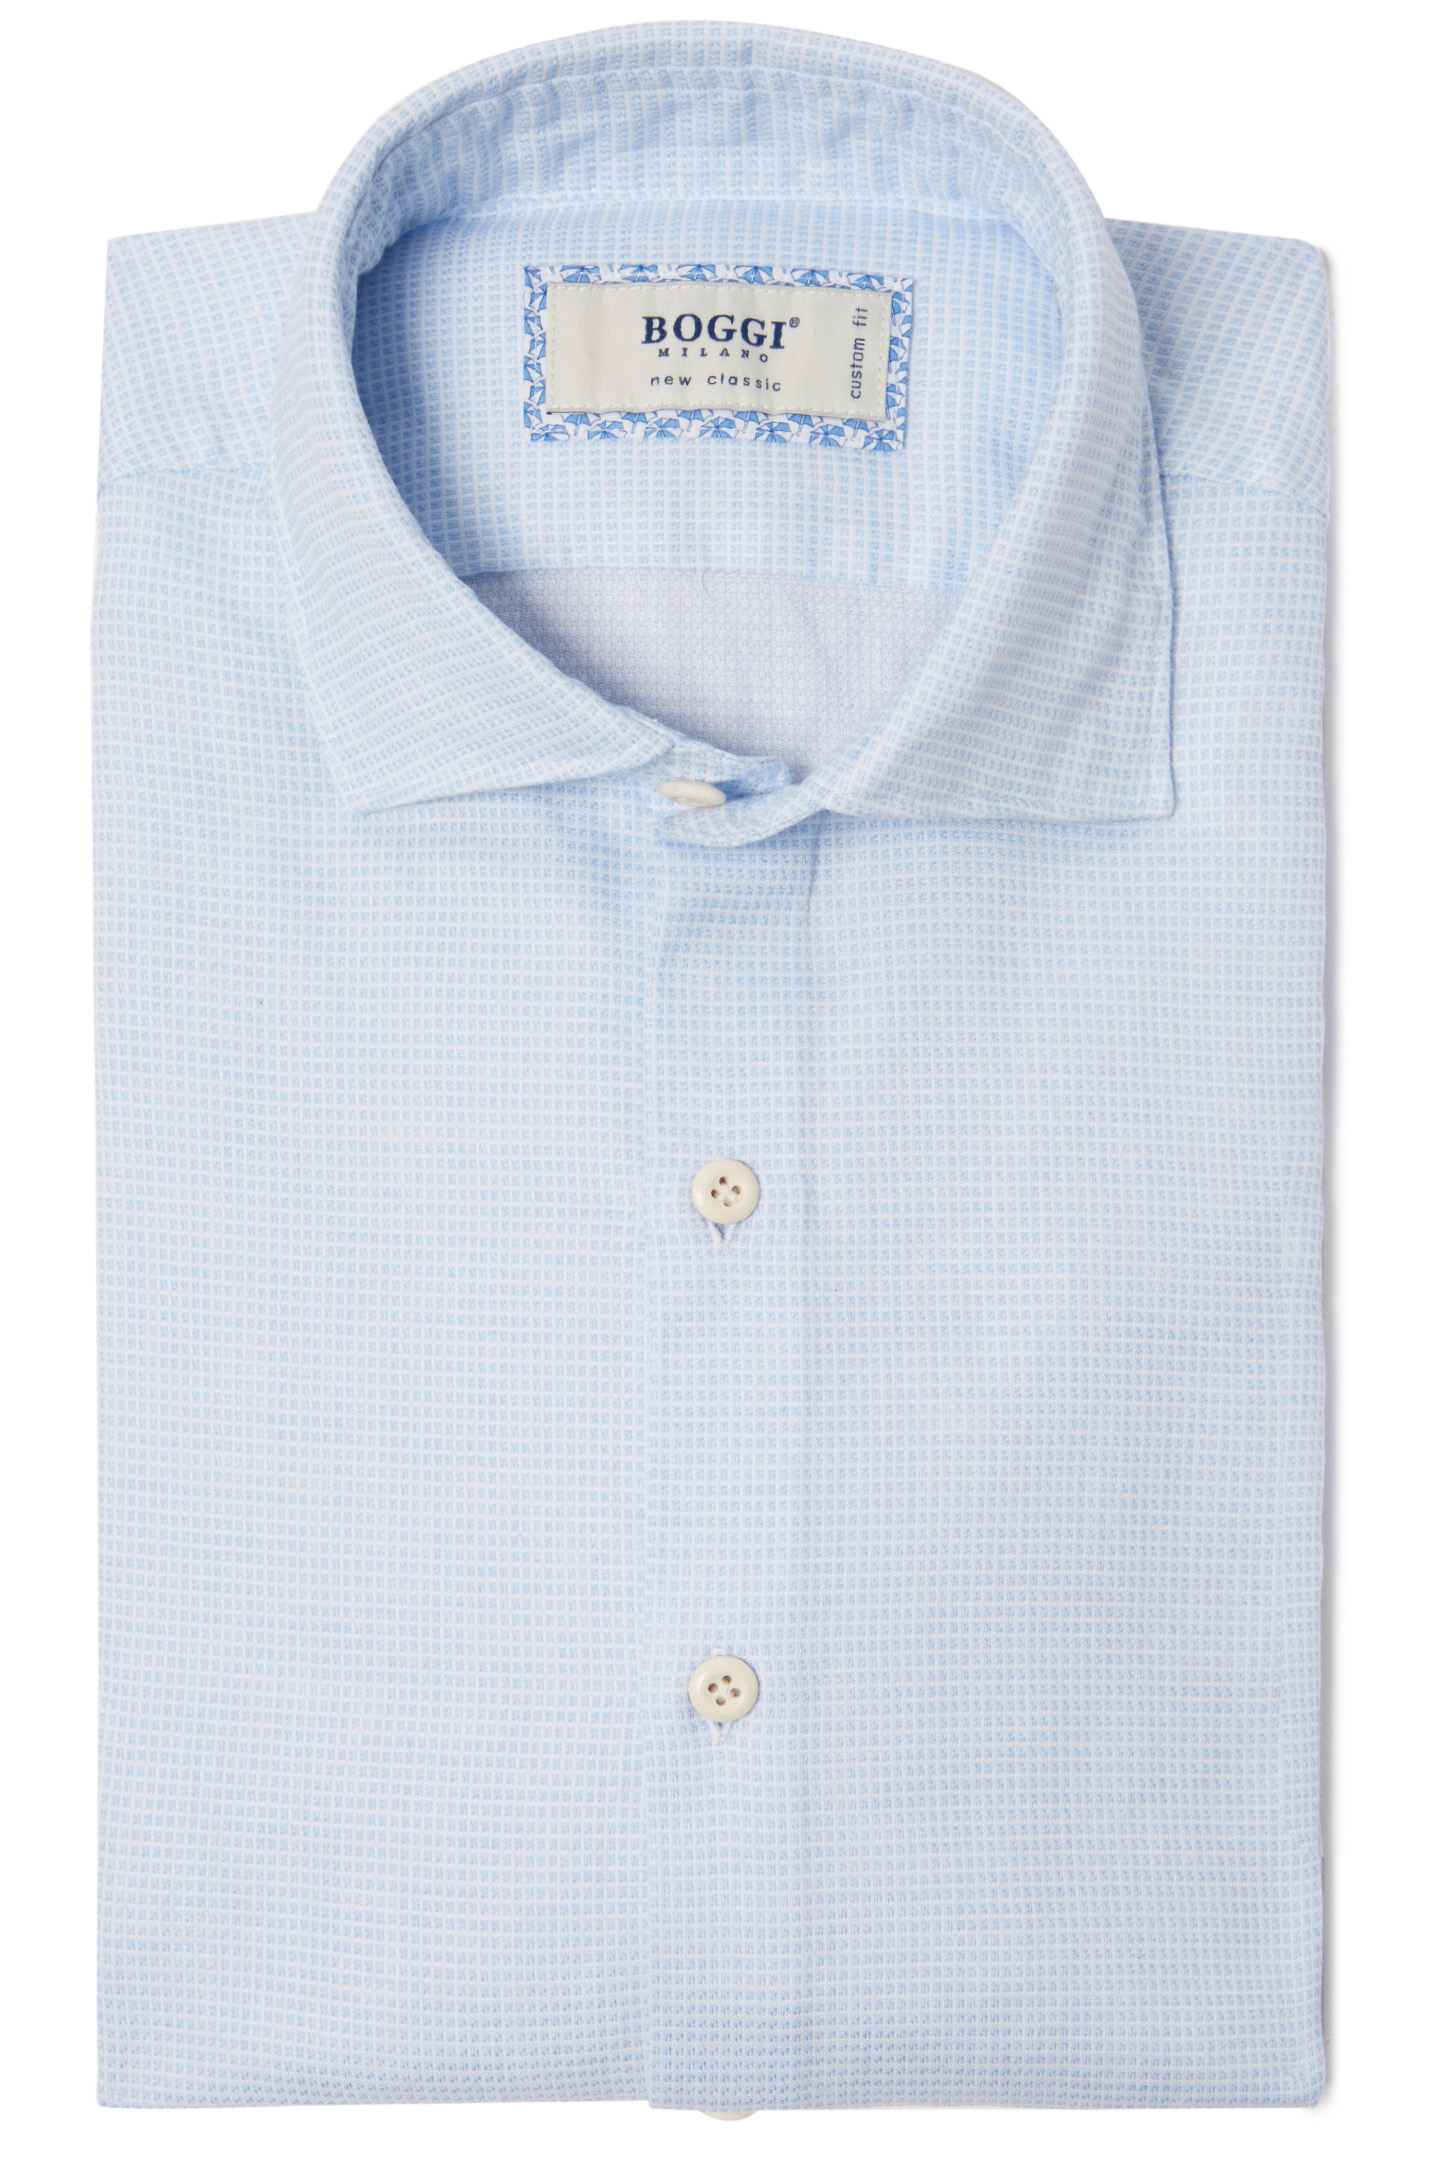 Custom Fit Shirt In Textured Cotton With Closed Collar Light Blue